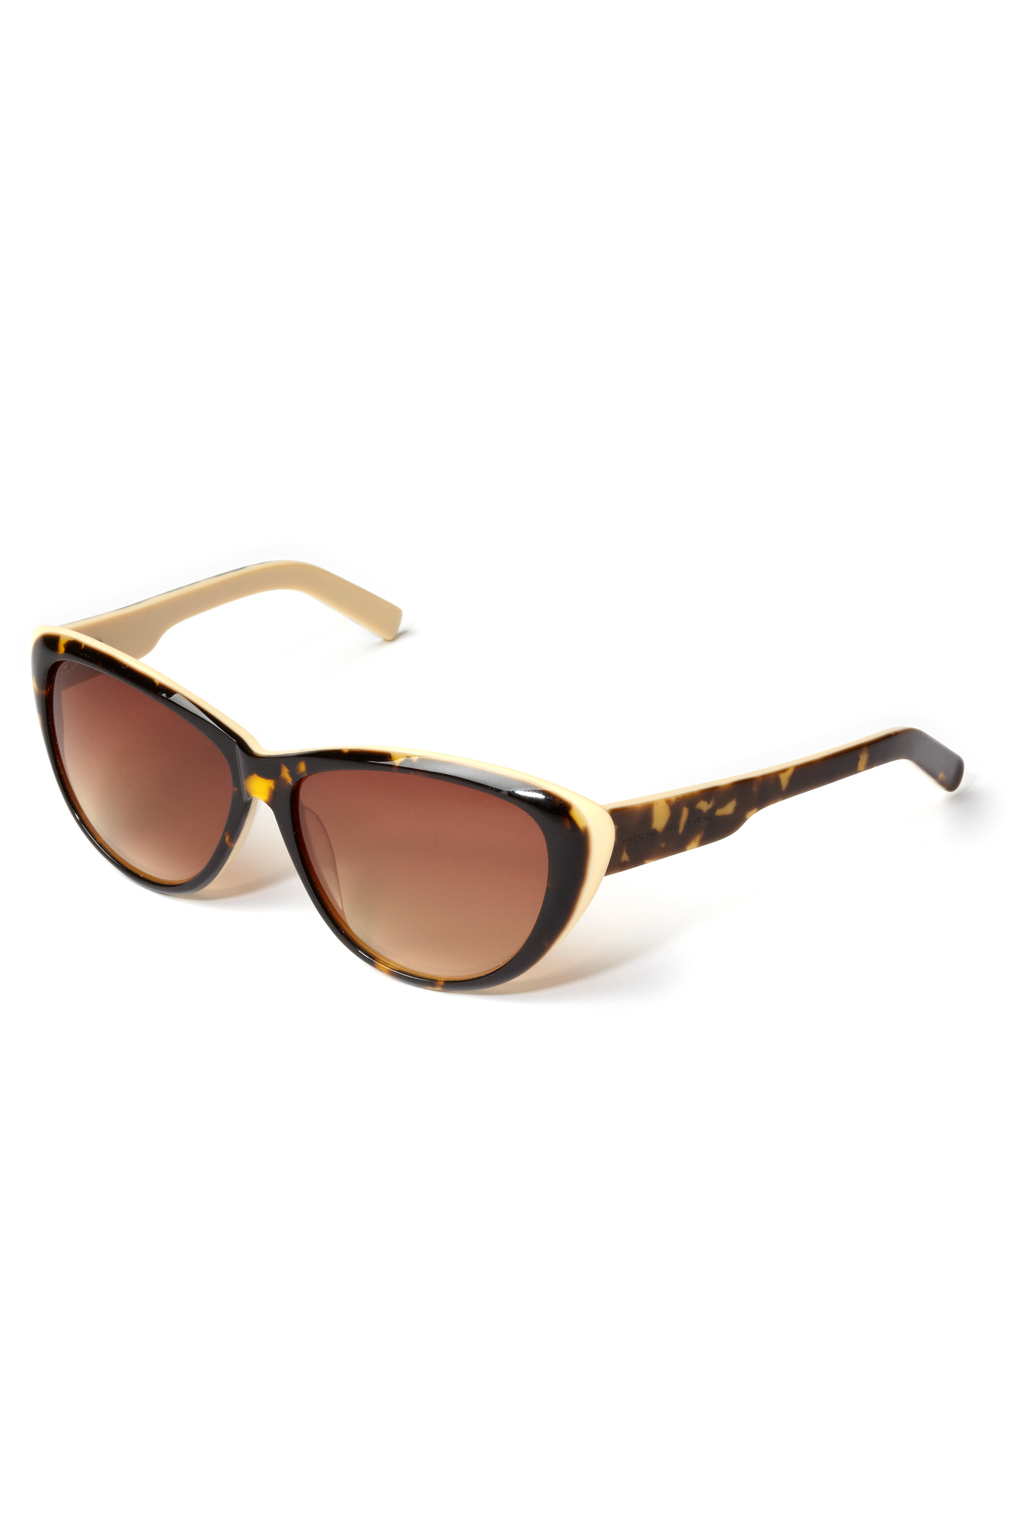 French Connection Square Frame Sunglasses in White (pale ...